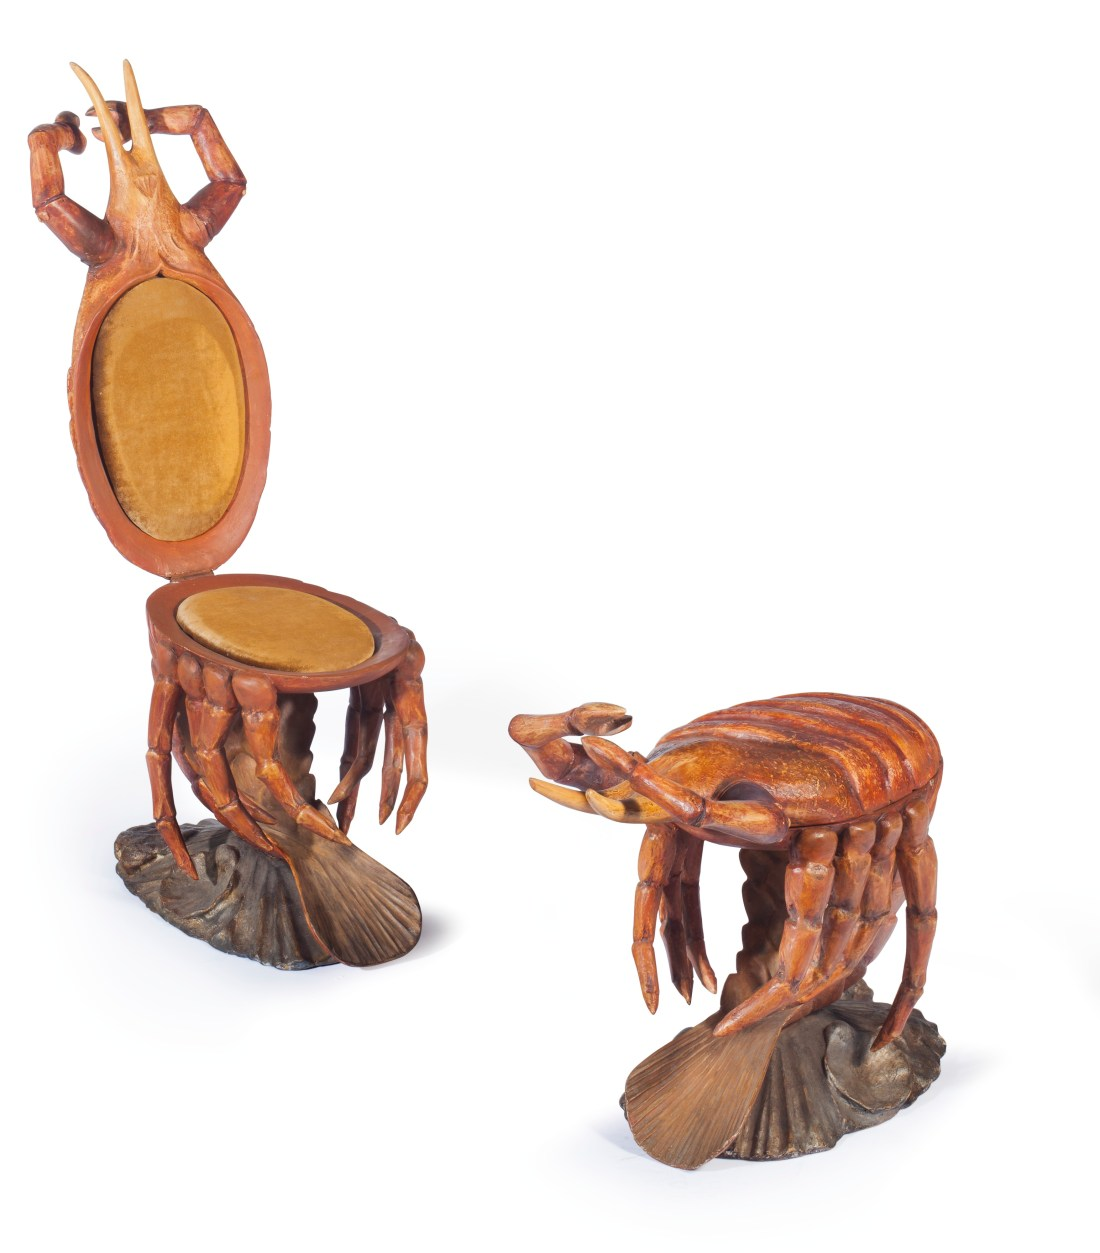 A pair of late 19th century Venetian lobster-form hinged chairs attributed to the manufacturer Pauly Et Cie.